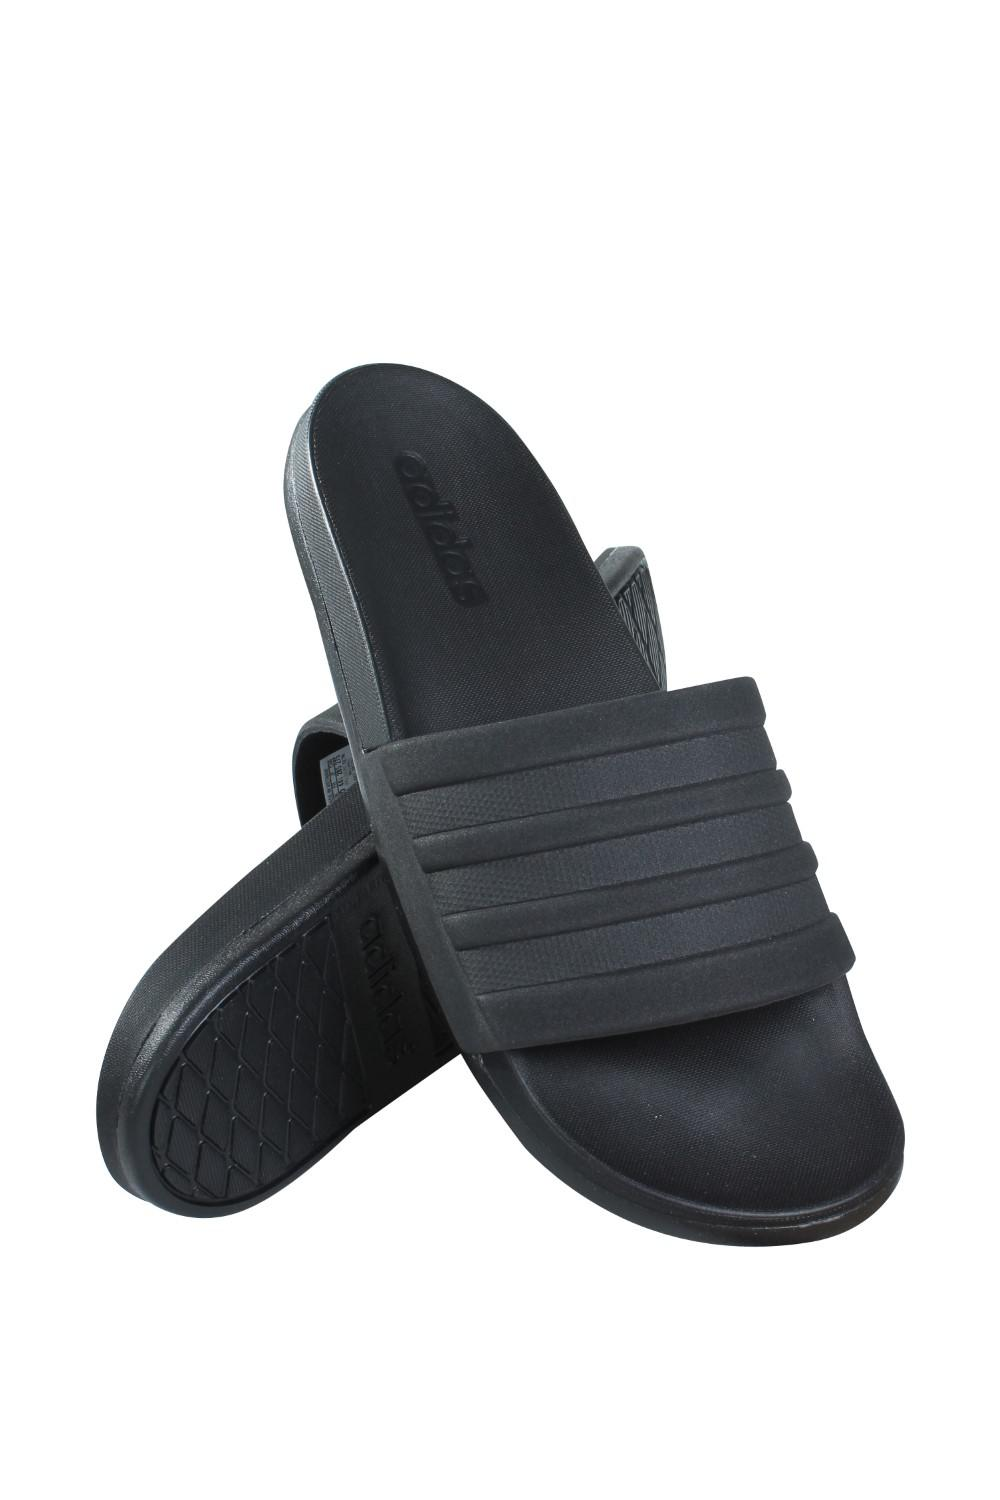 d4bd5890437f Lyst - adidas Originals Performance Adilette Cf+ Mono Slide Sandals ...